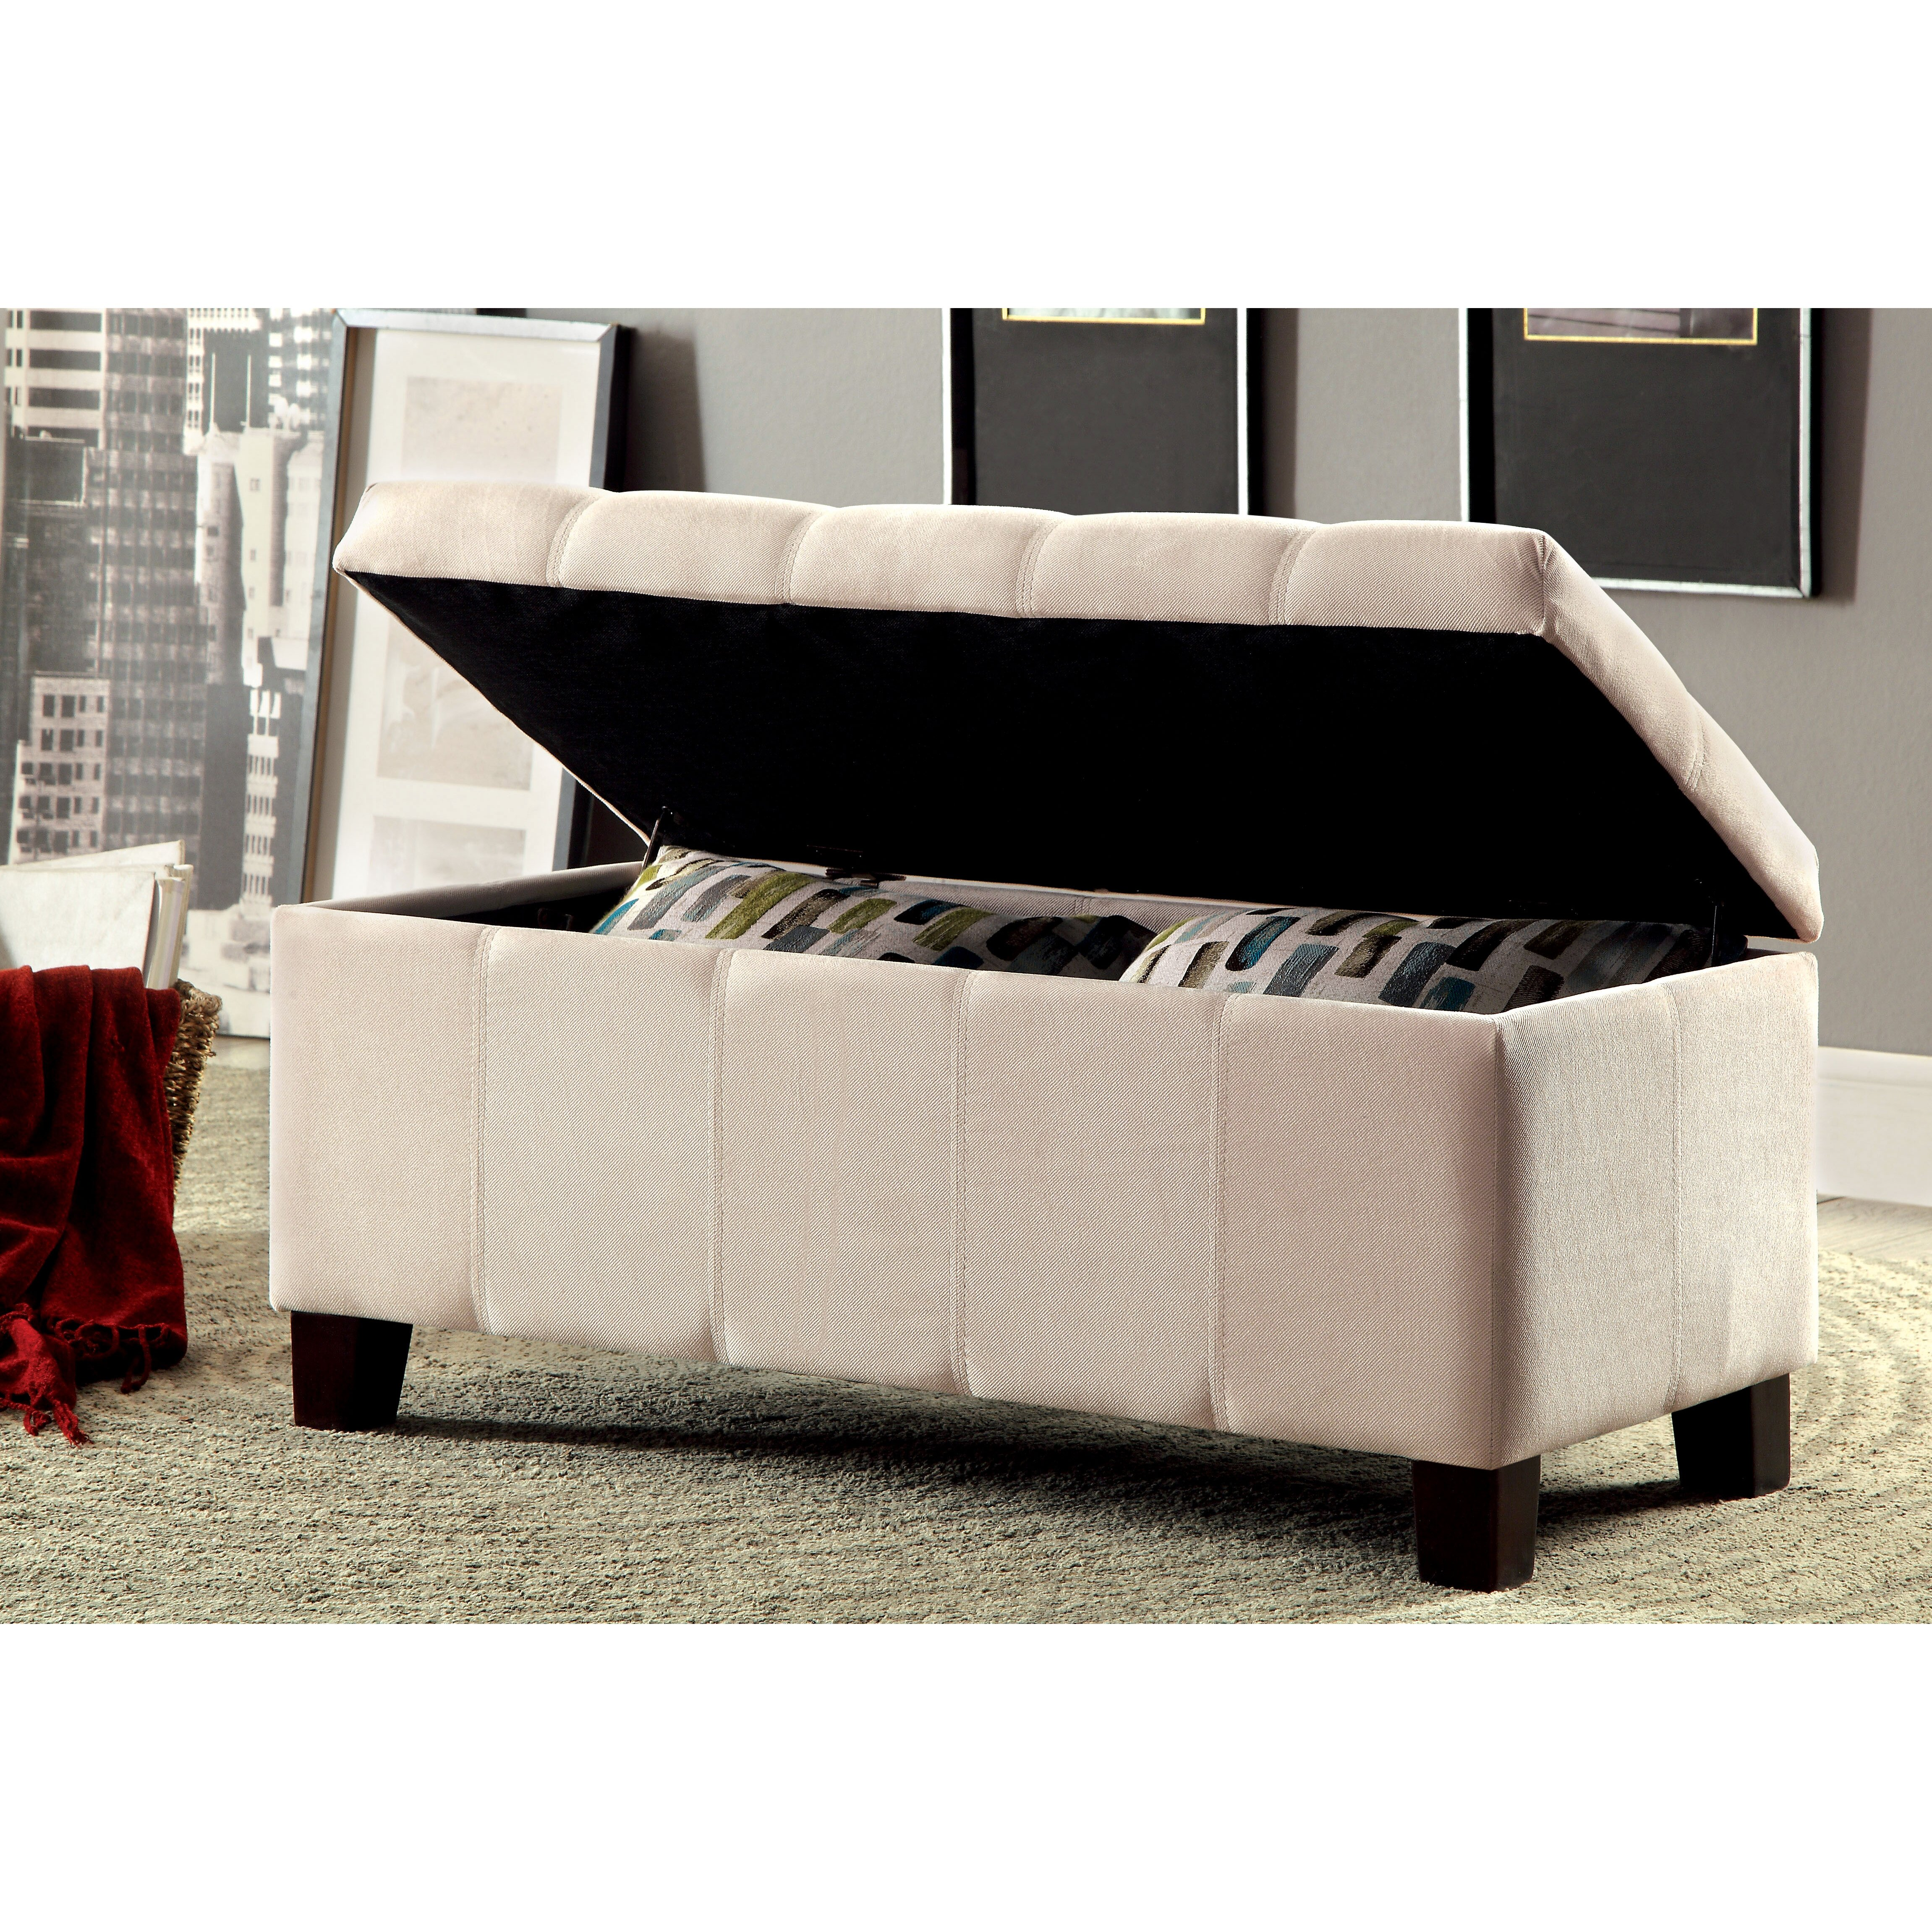 Charlton Home Oliver Upholstered Storage Entryway Bench